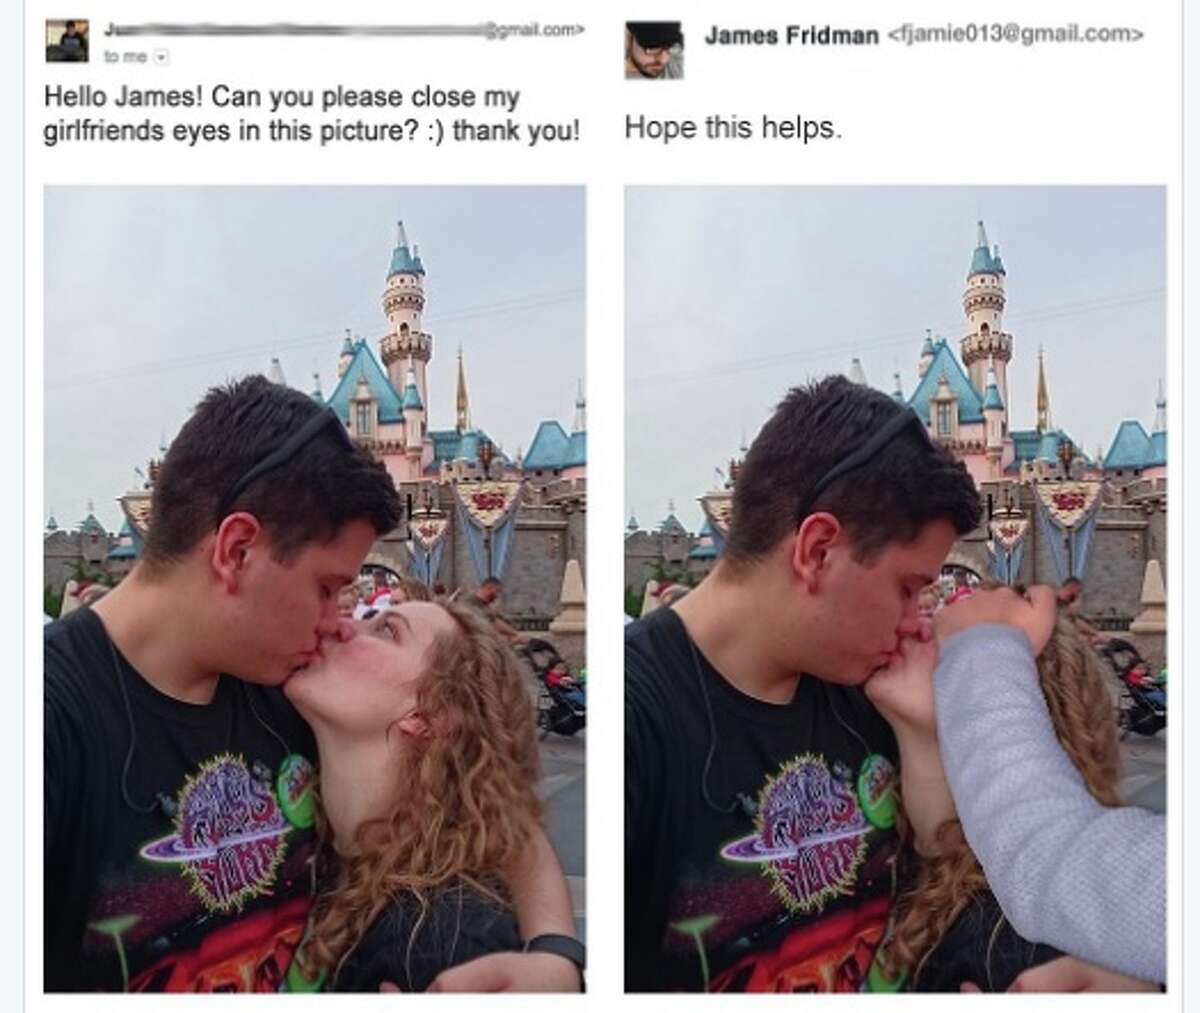 Request:Hello James! Can you please close my girlfriends eyes in this picture? :) thank you! James Fridman:Hope this helps. (For more of James Fridman's tongue-in-cheek before-and-after Photoshop work, click through this slide show.)